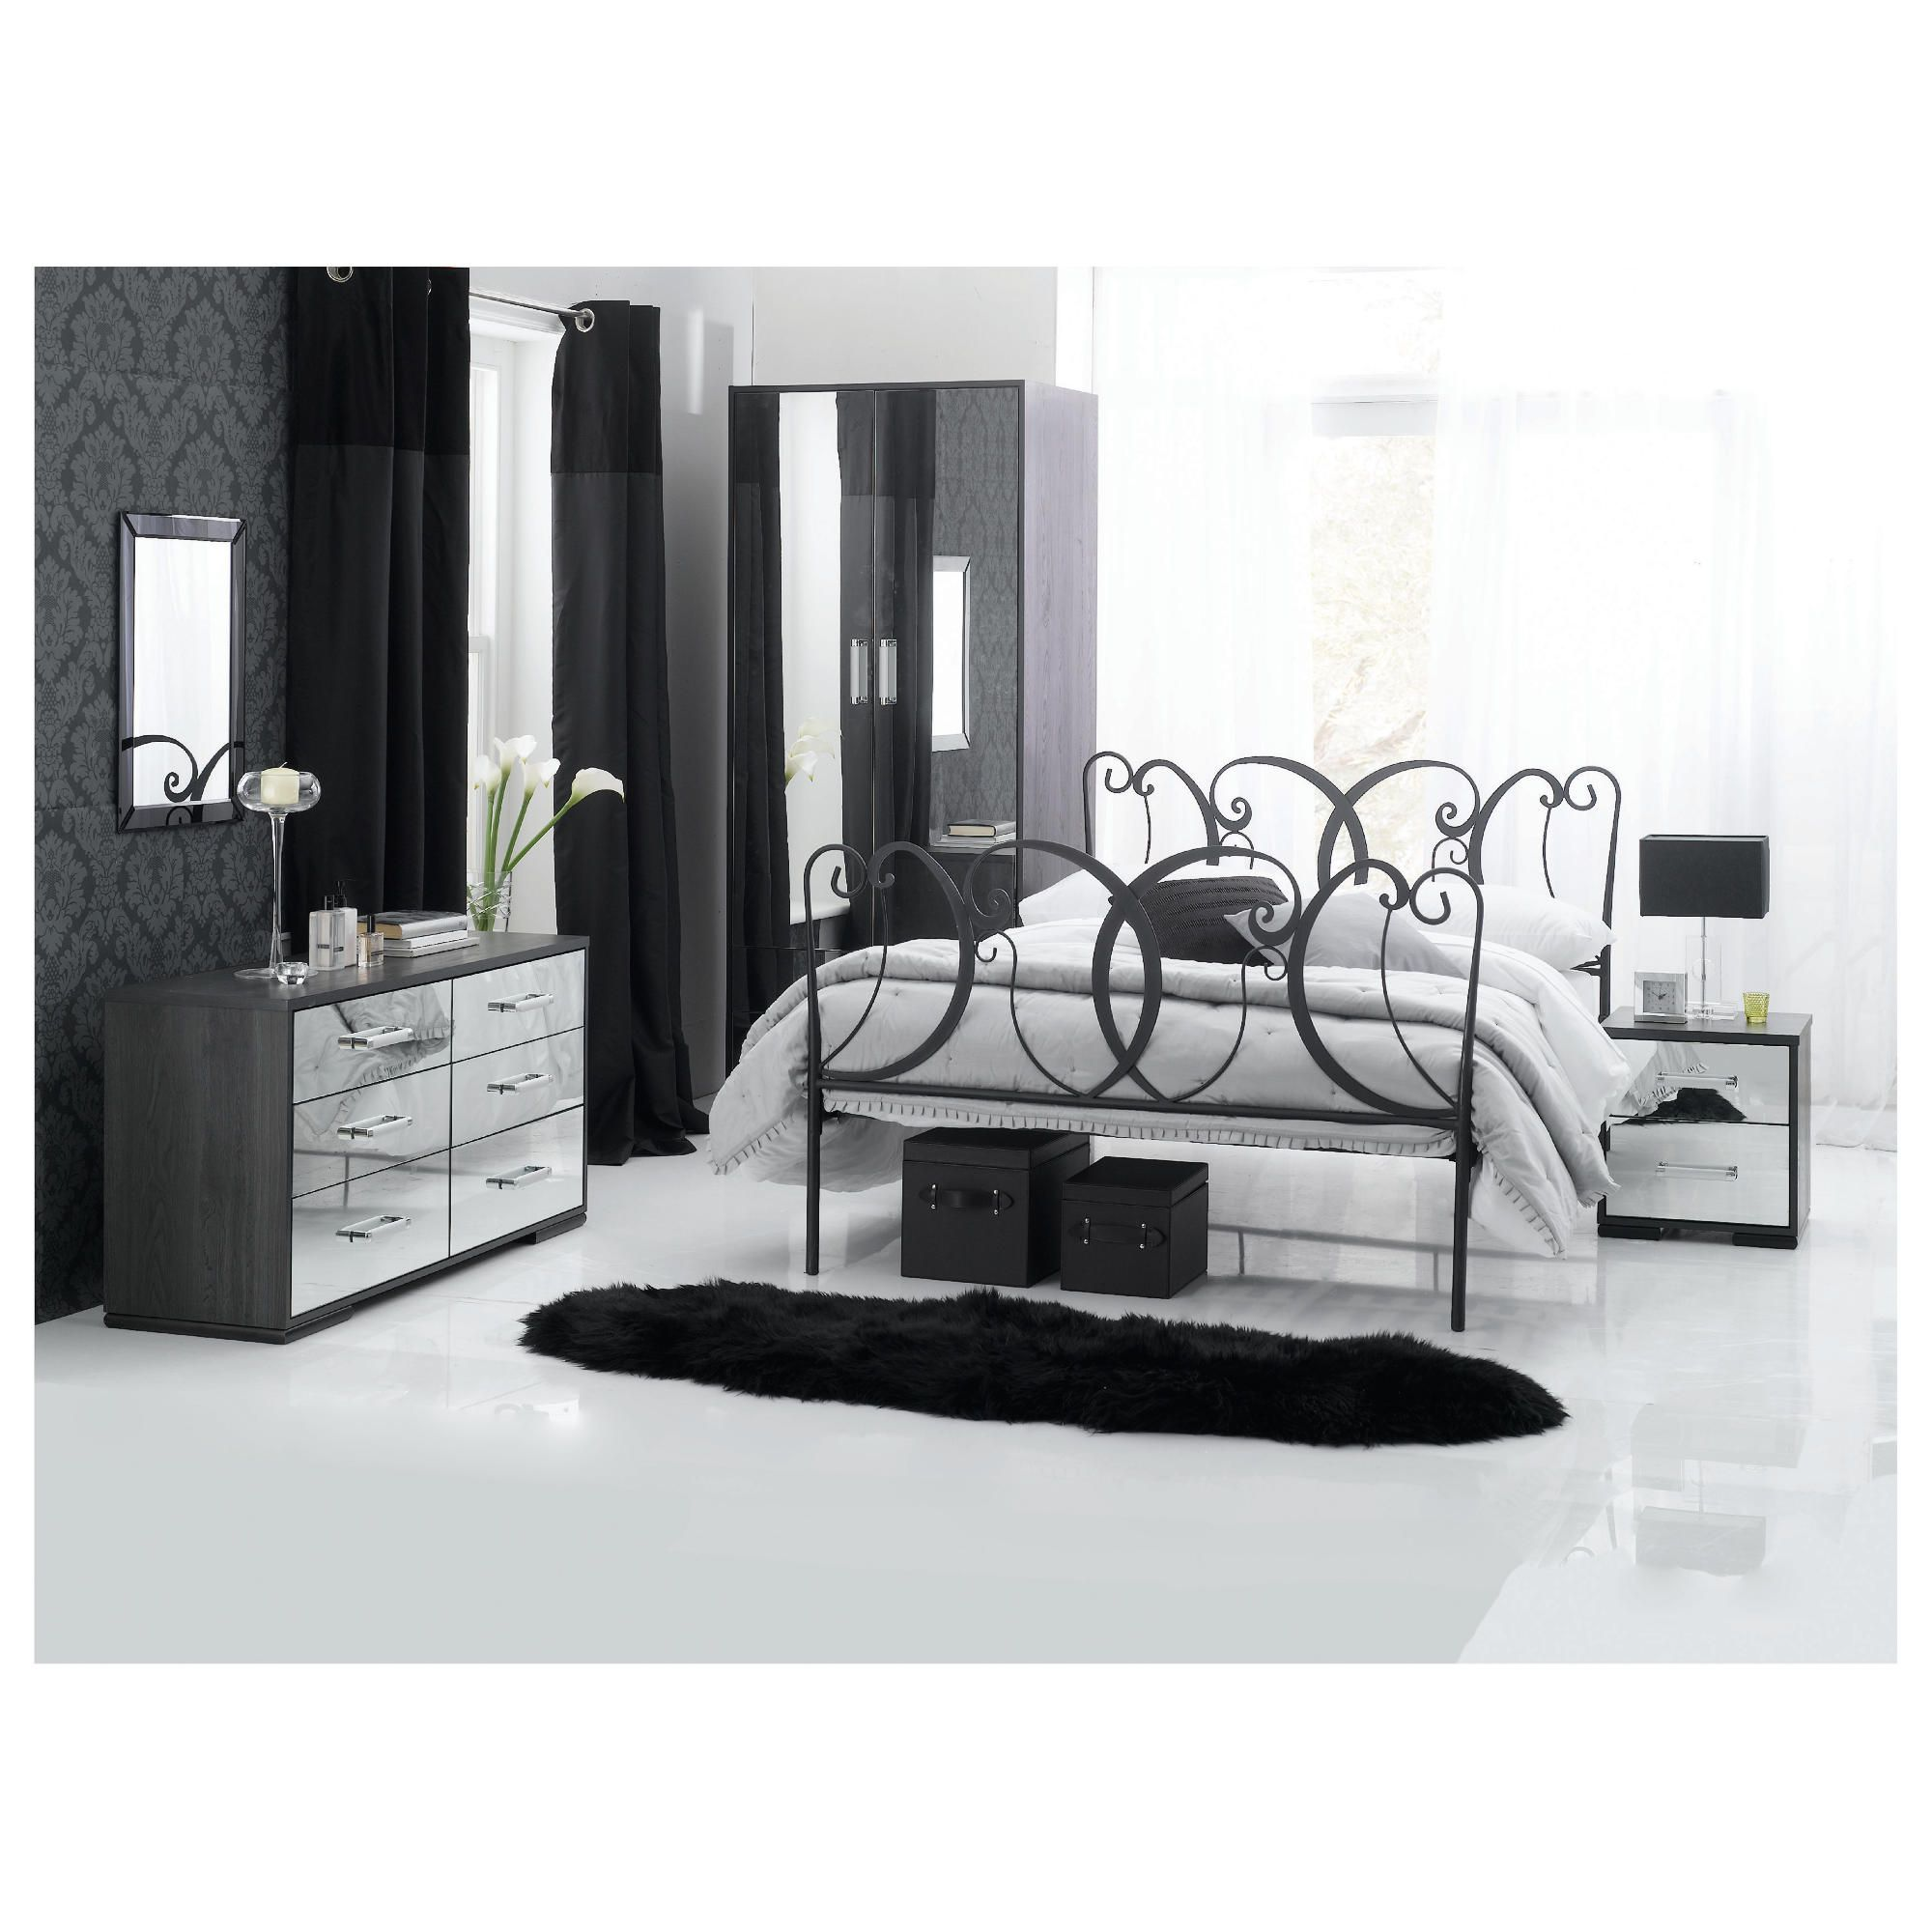 Sophia 2 Dr Robe 6 Drw Wide & Bedside Chest Set Mirrored at Tesco Direct